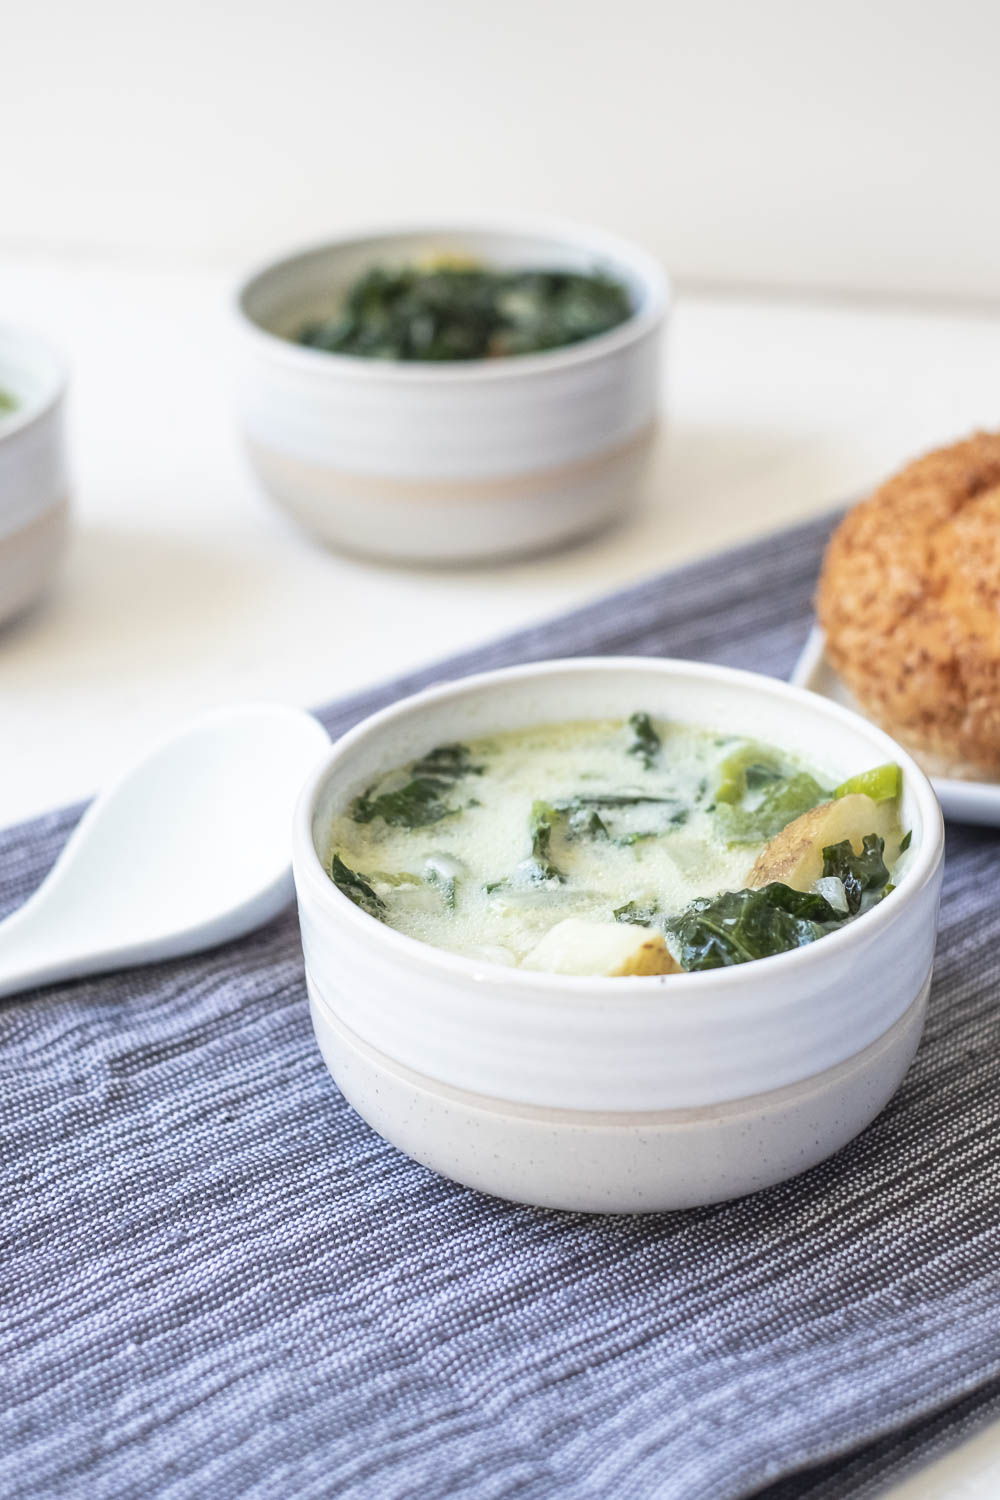 Vegetarian Zuppa Toscana. Now you can have your favorite Olive Garden soup at home with this healthier Zuppa Toscana! It's exceptionally comforting food at its best!